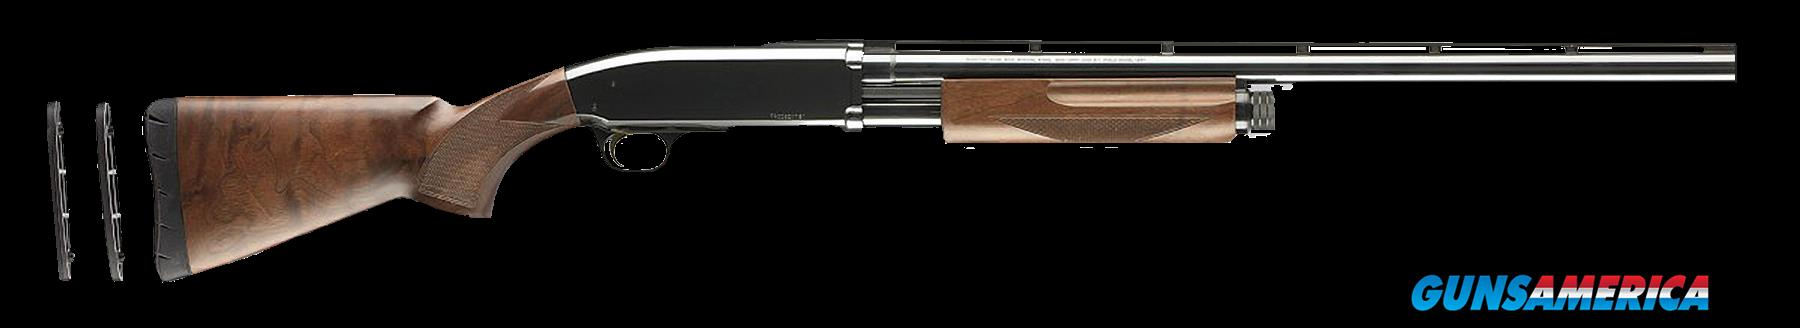 "Browning 012270605 BPS Micro Midas Pump 20 Gauge 26"" 3"" Black Walnut Stk Blued Rcvr  Guns > Shotguns > Browning Shotguns > Pump Action"